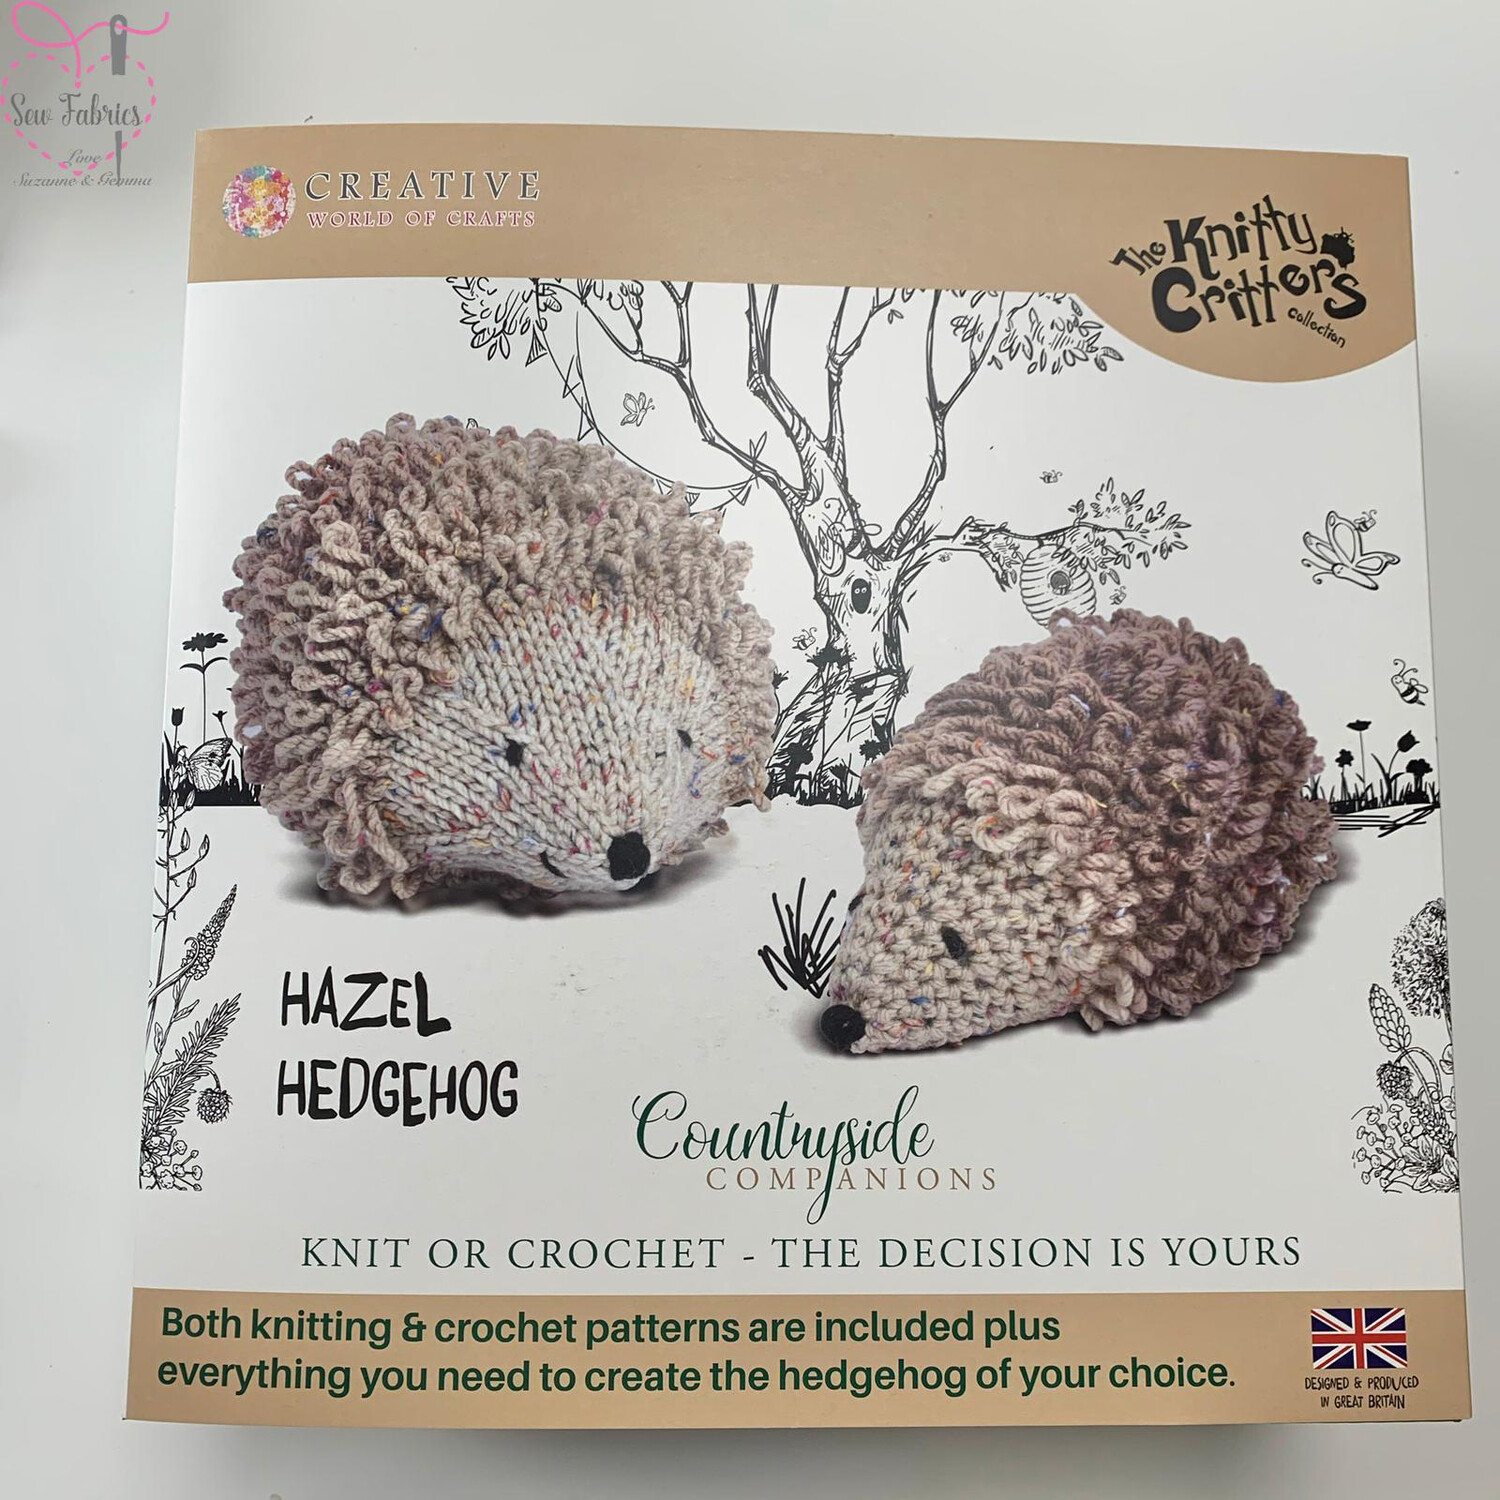 Hazel Hedgehog, The Knitty Critters Countryside Companions Collection, Knit or Crochet Kit